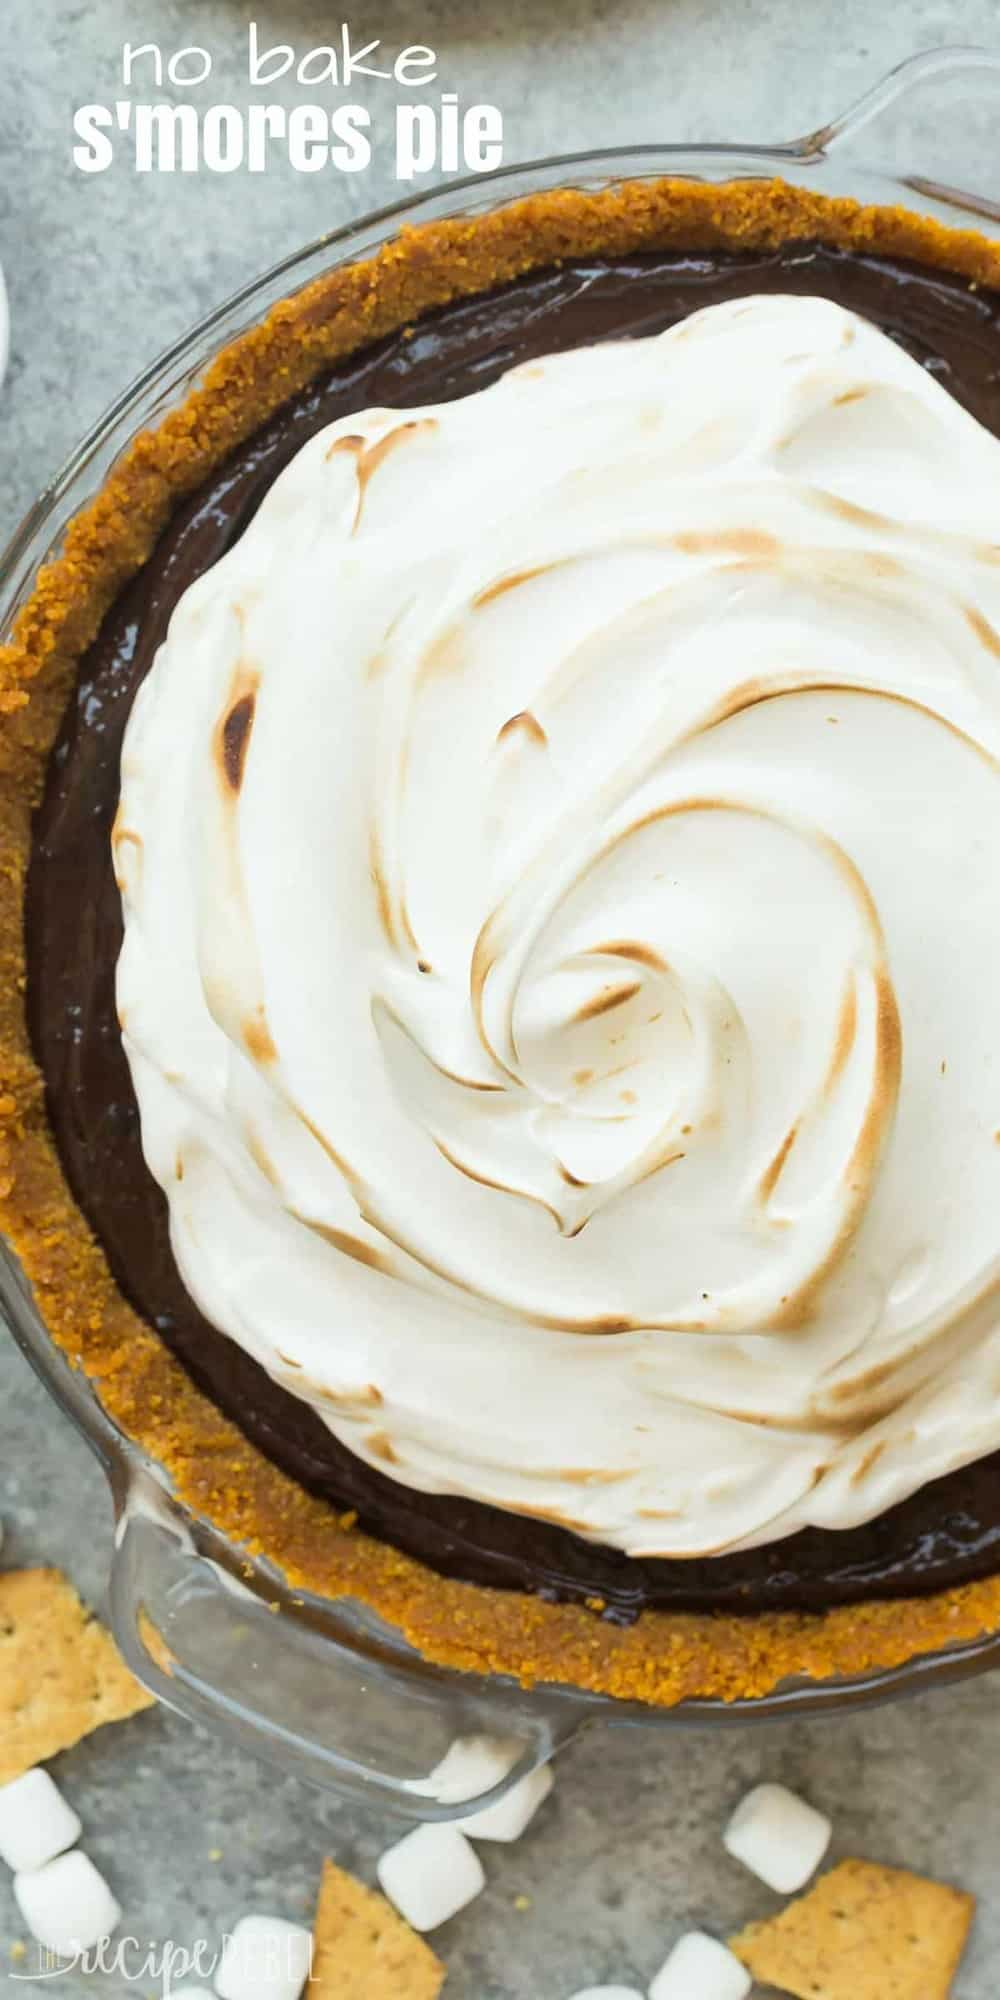 long overhead image of no bake smores pie with toasted marshmallow cream